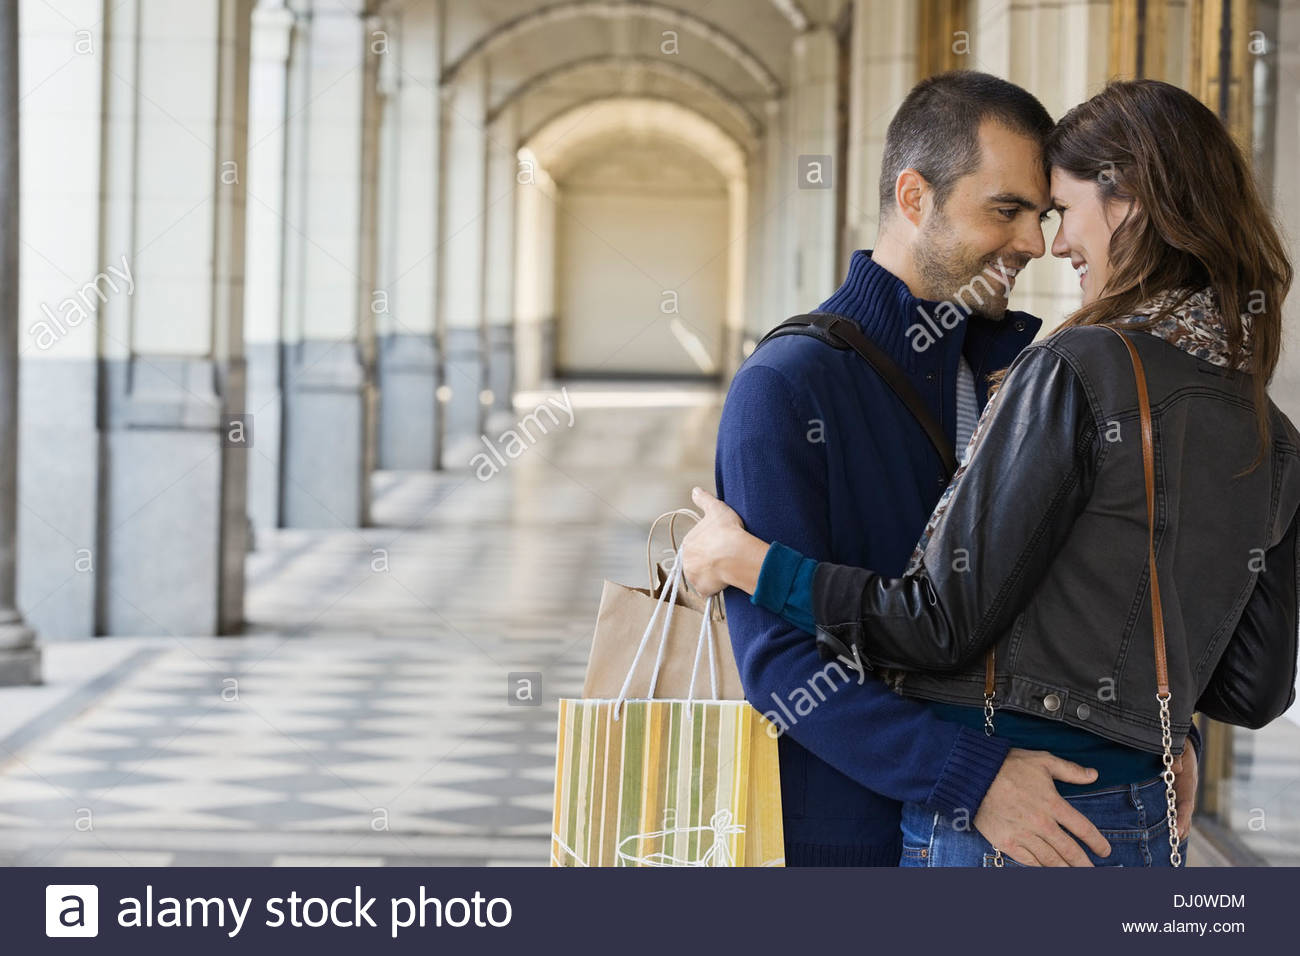 Affectionate couple looking at each other Stock Photo